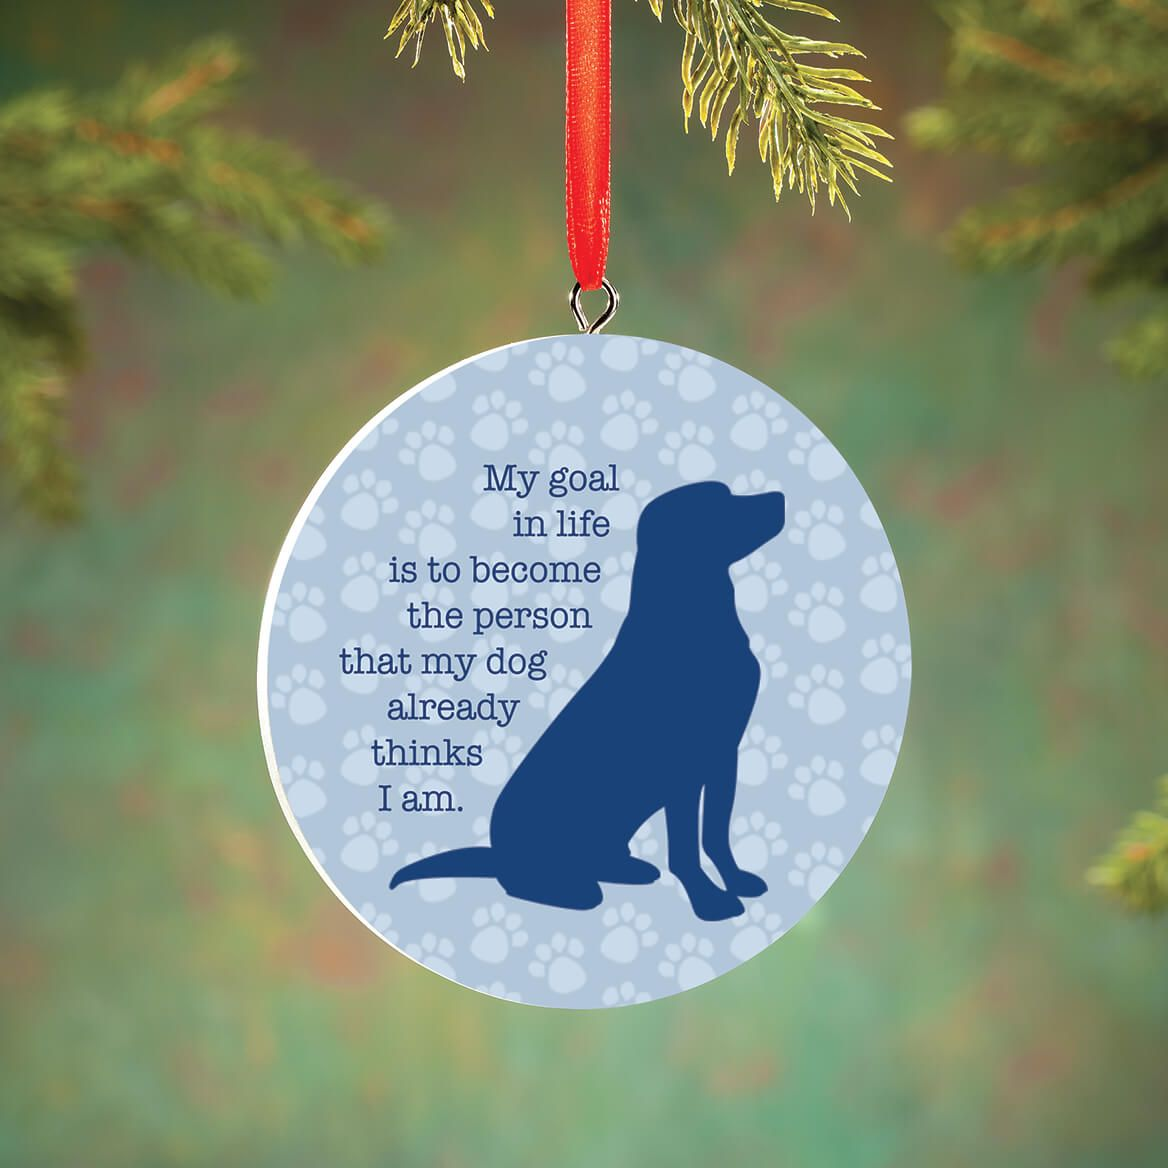 Personalized Dog Life Goals Ornament-372730